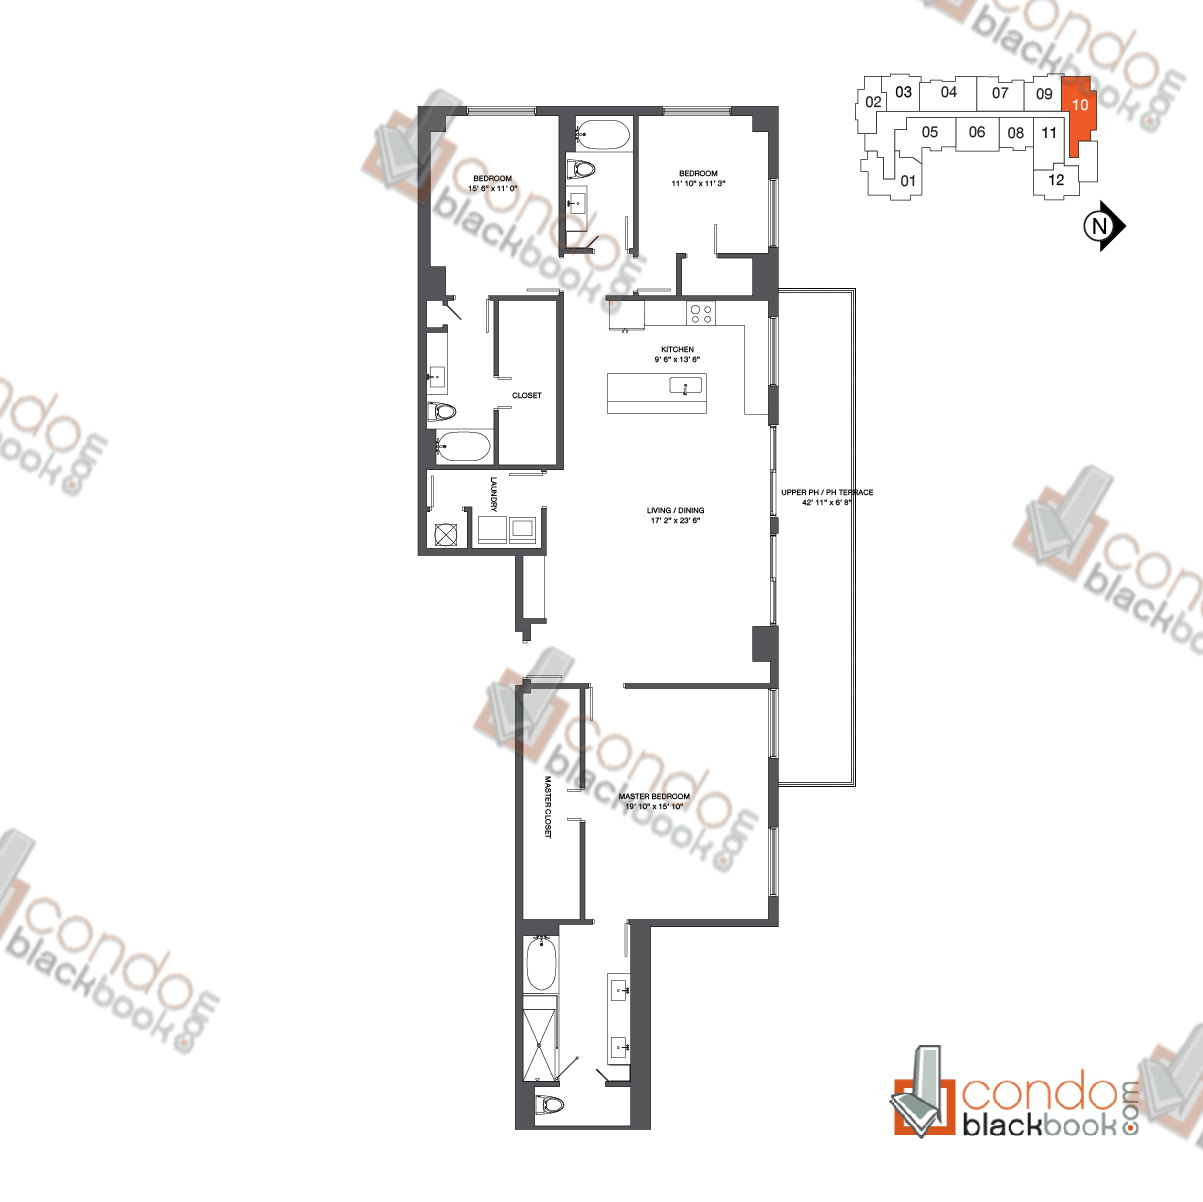 Floor plan for Nine at Mary Brickell Village Brickell Miami, model Penthouse 10, line 10, 3/3 bedrooms, 2,084 sq ft